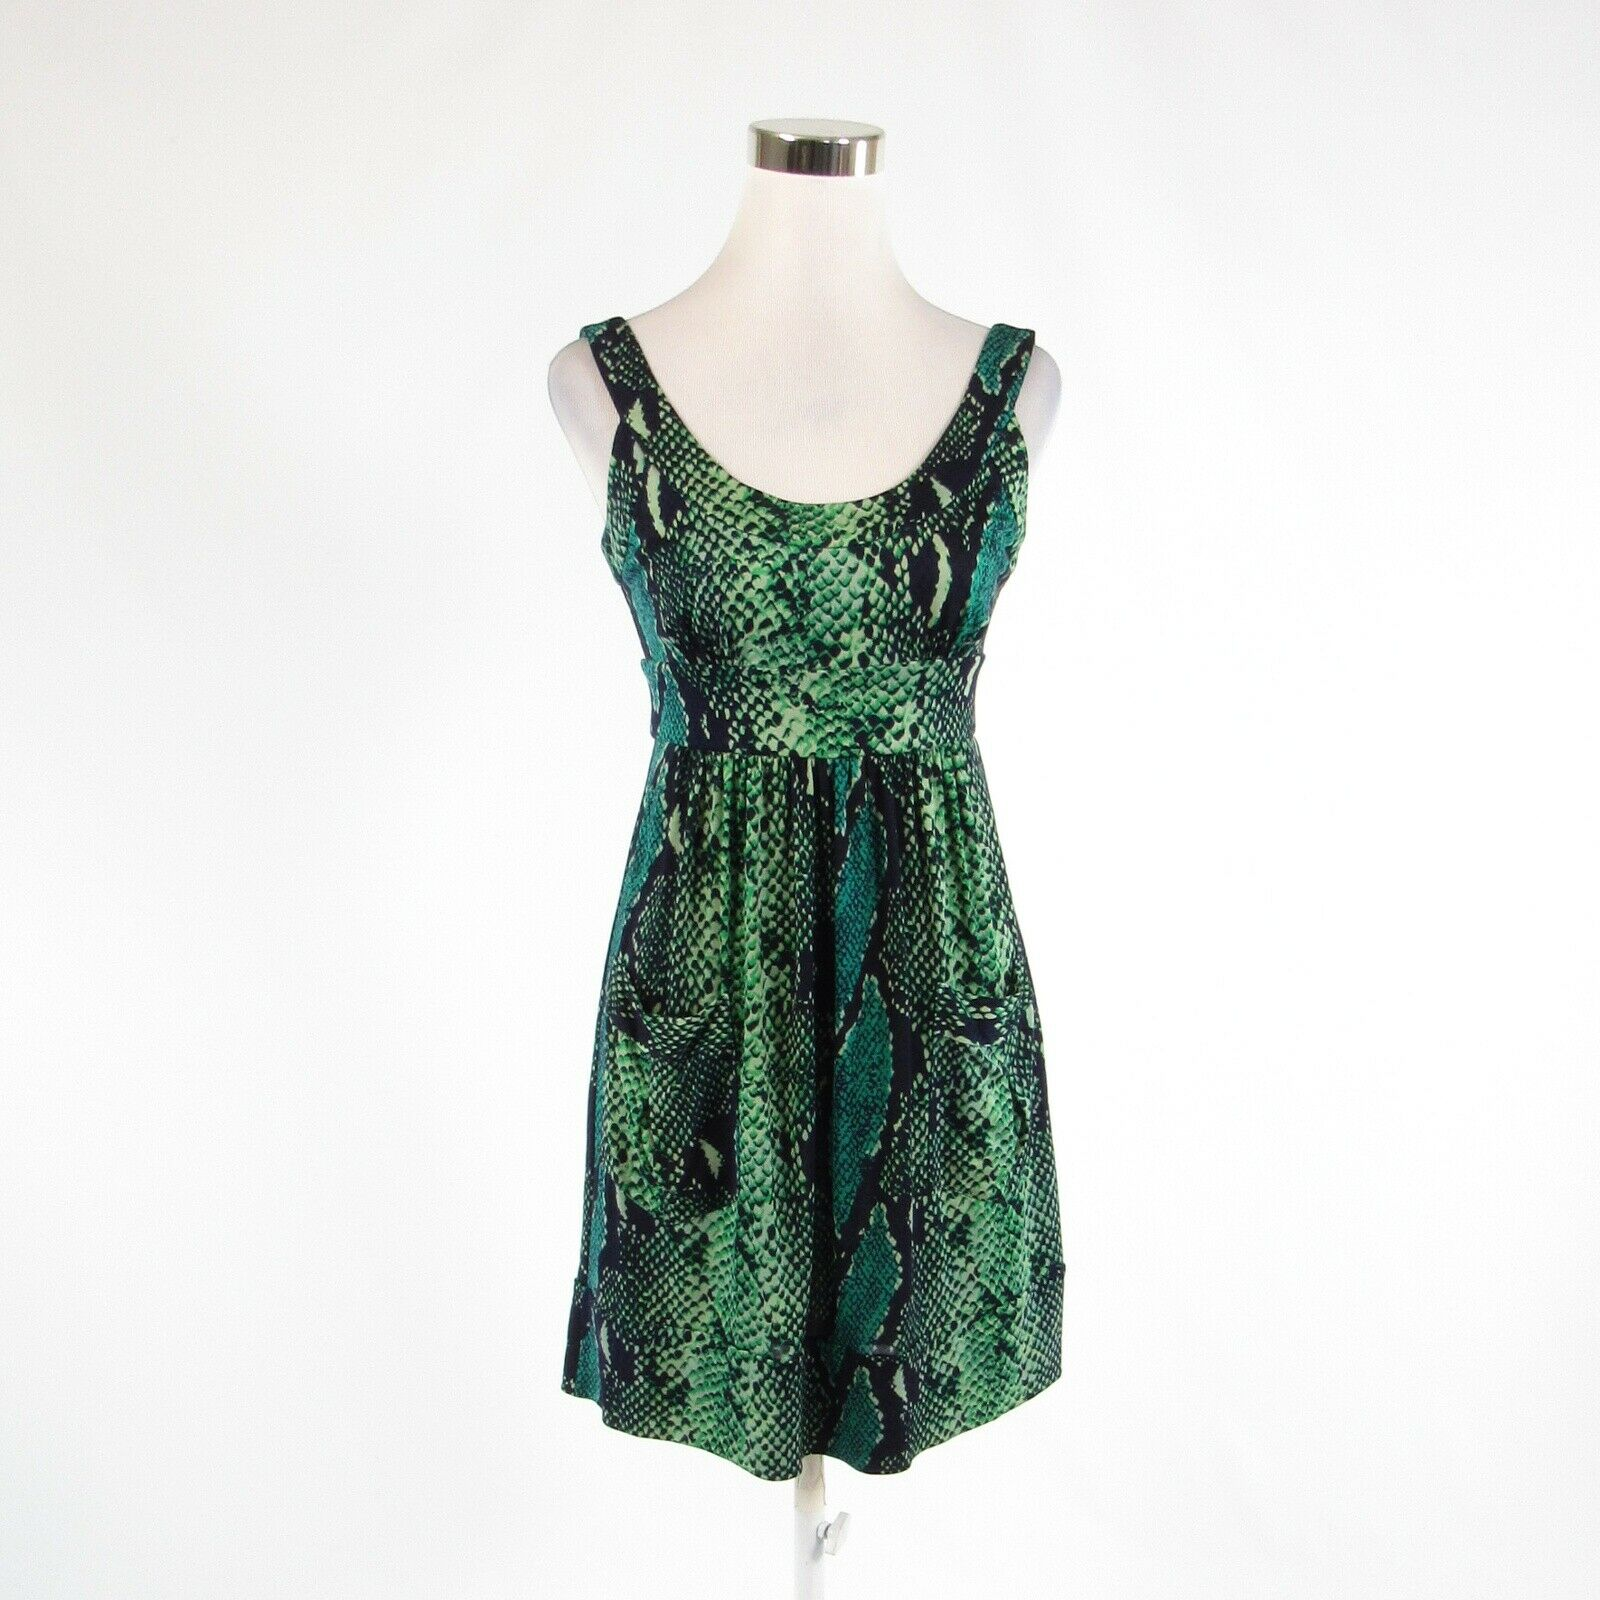 Black green snake 100% silk DIANE VON FURSTENBERG empire waist dress 4